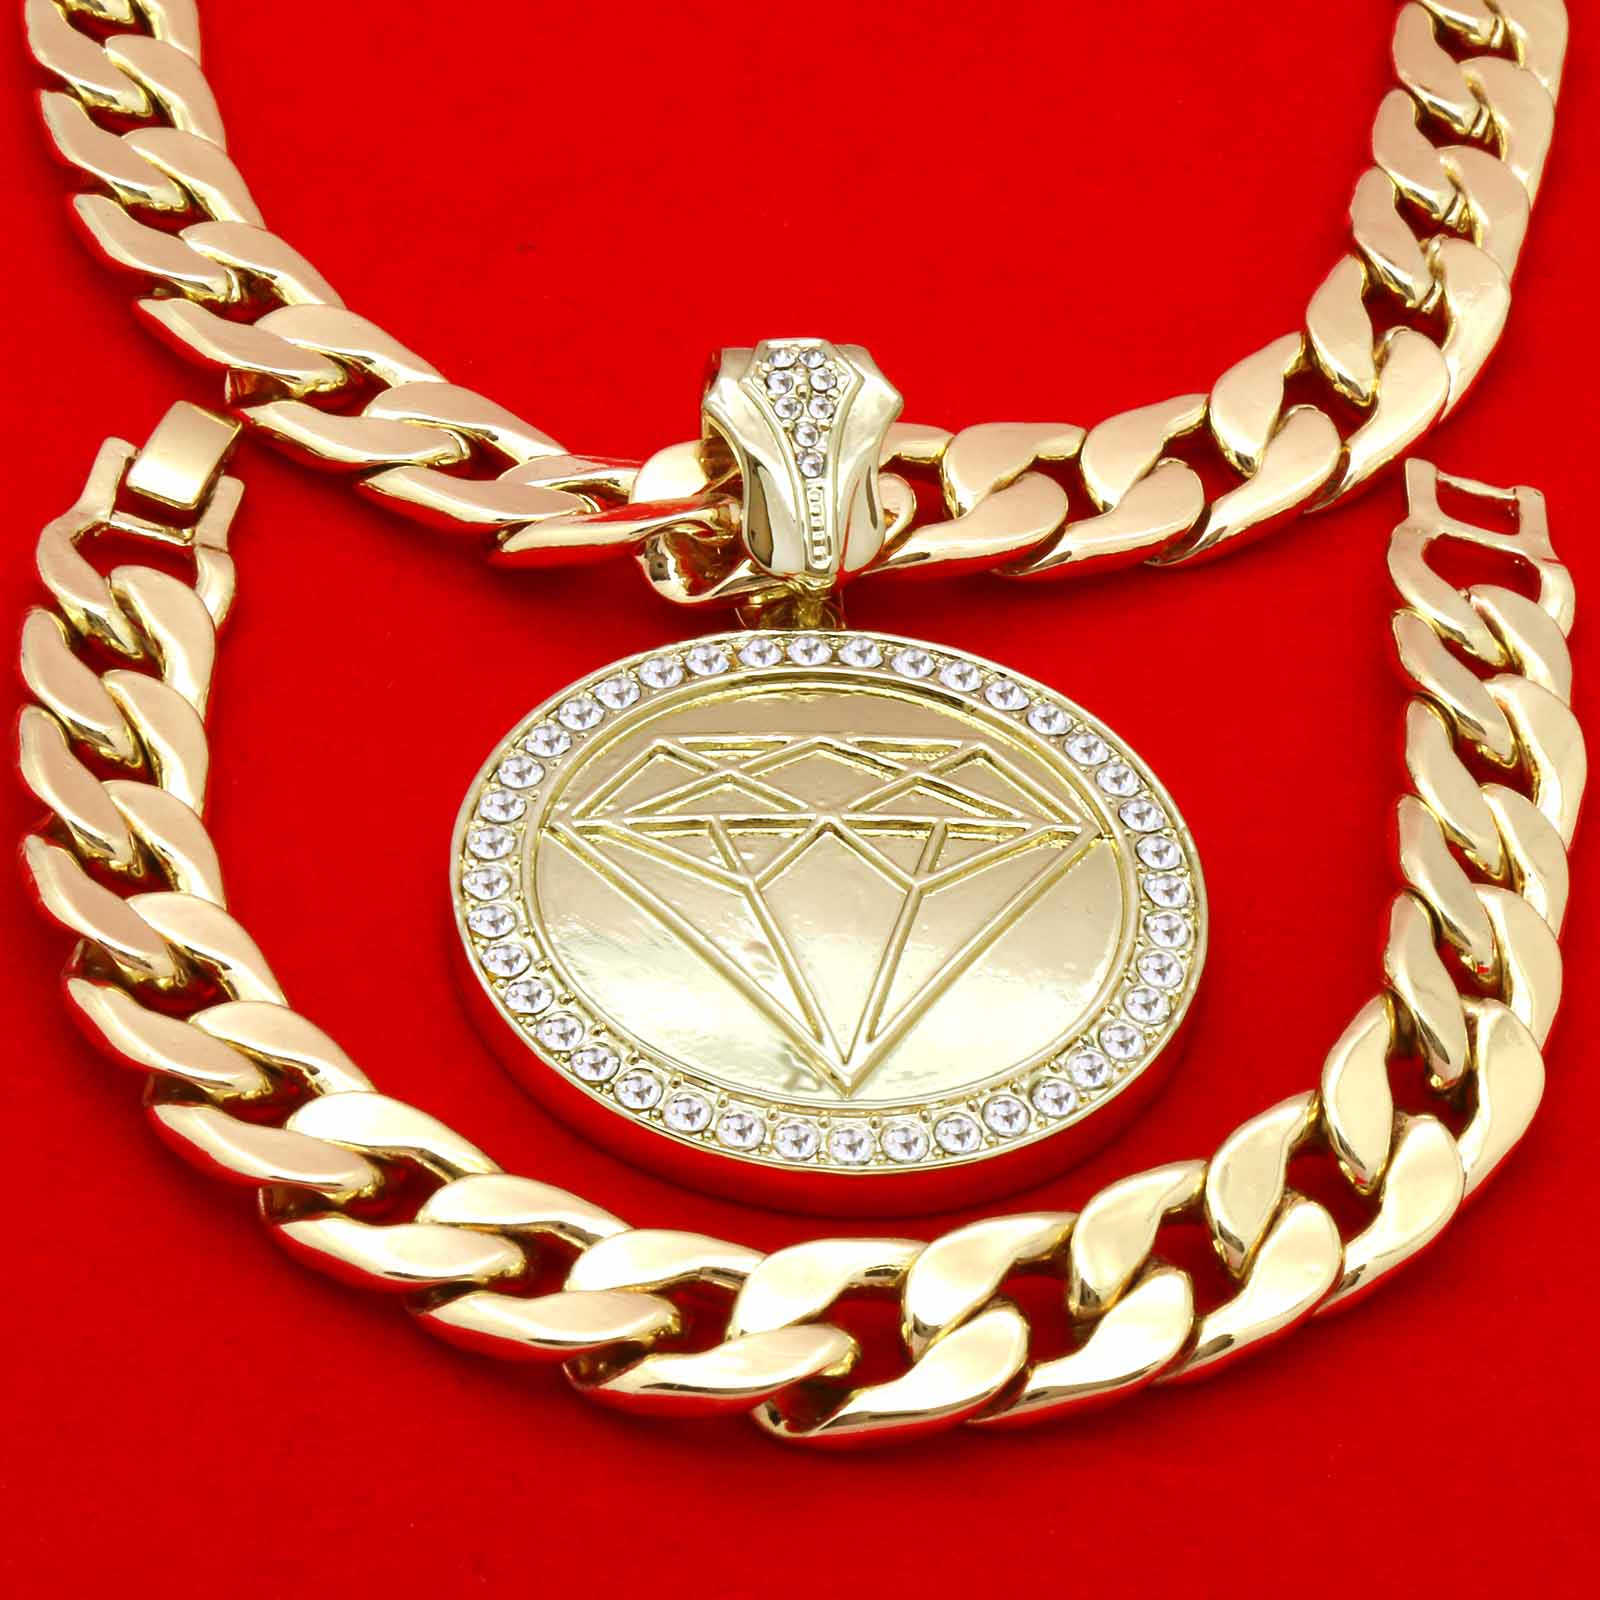 CUBAN CHAIN & BRACELET GOLD DIAMOND